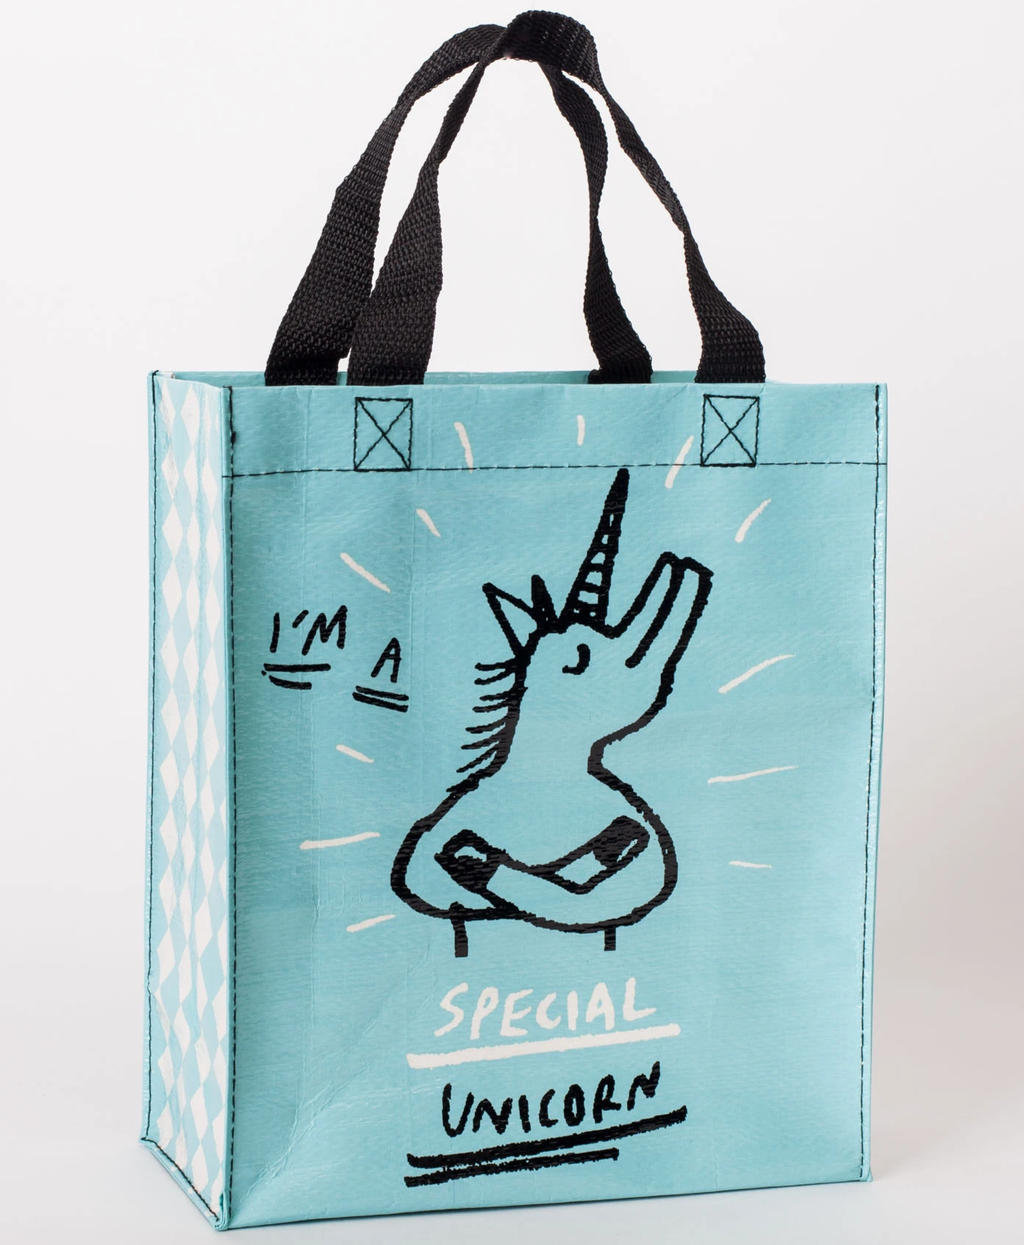 I'm A Special Unicorn - Handy Tote